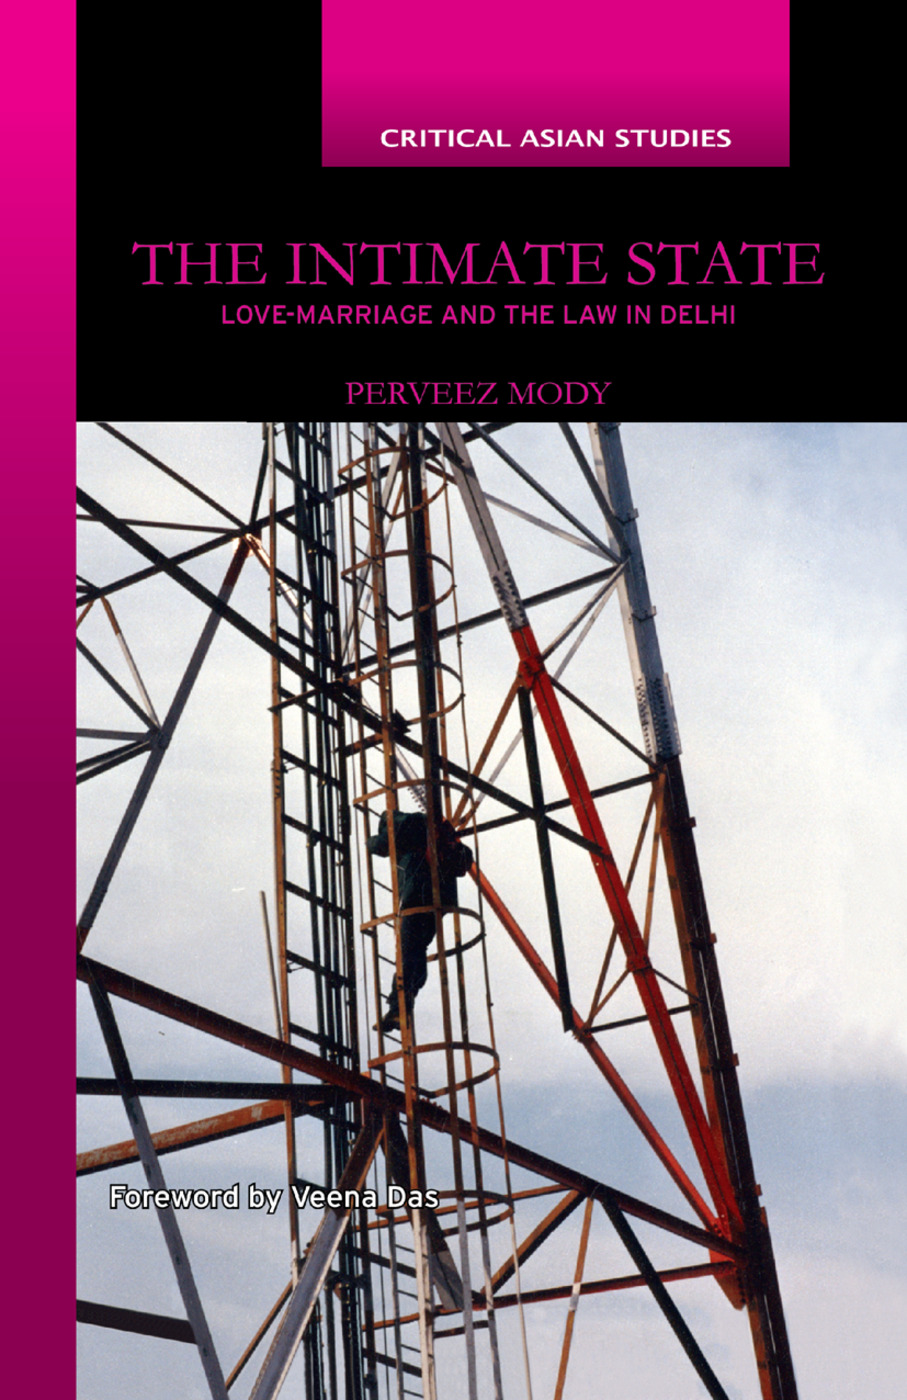 The Intimate State